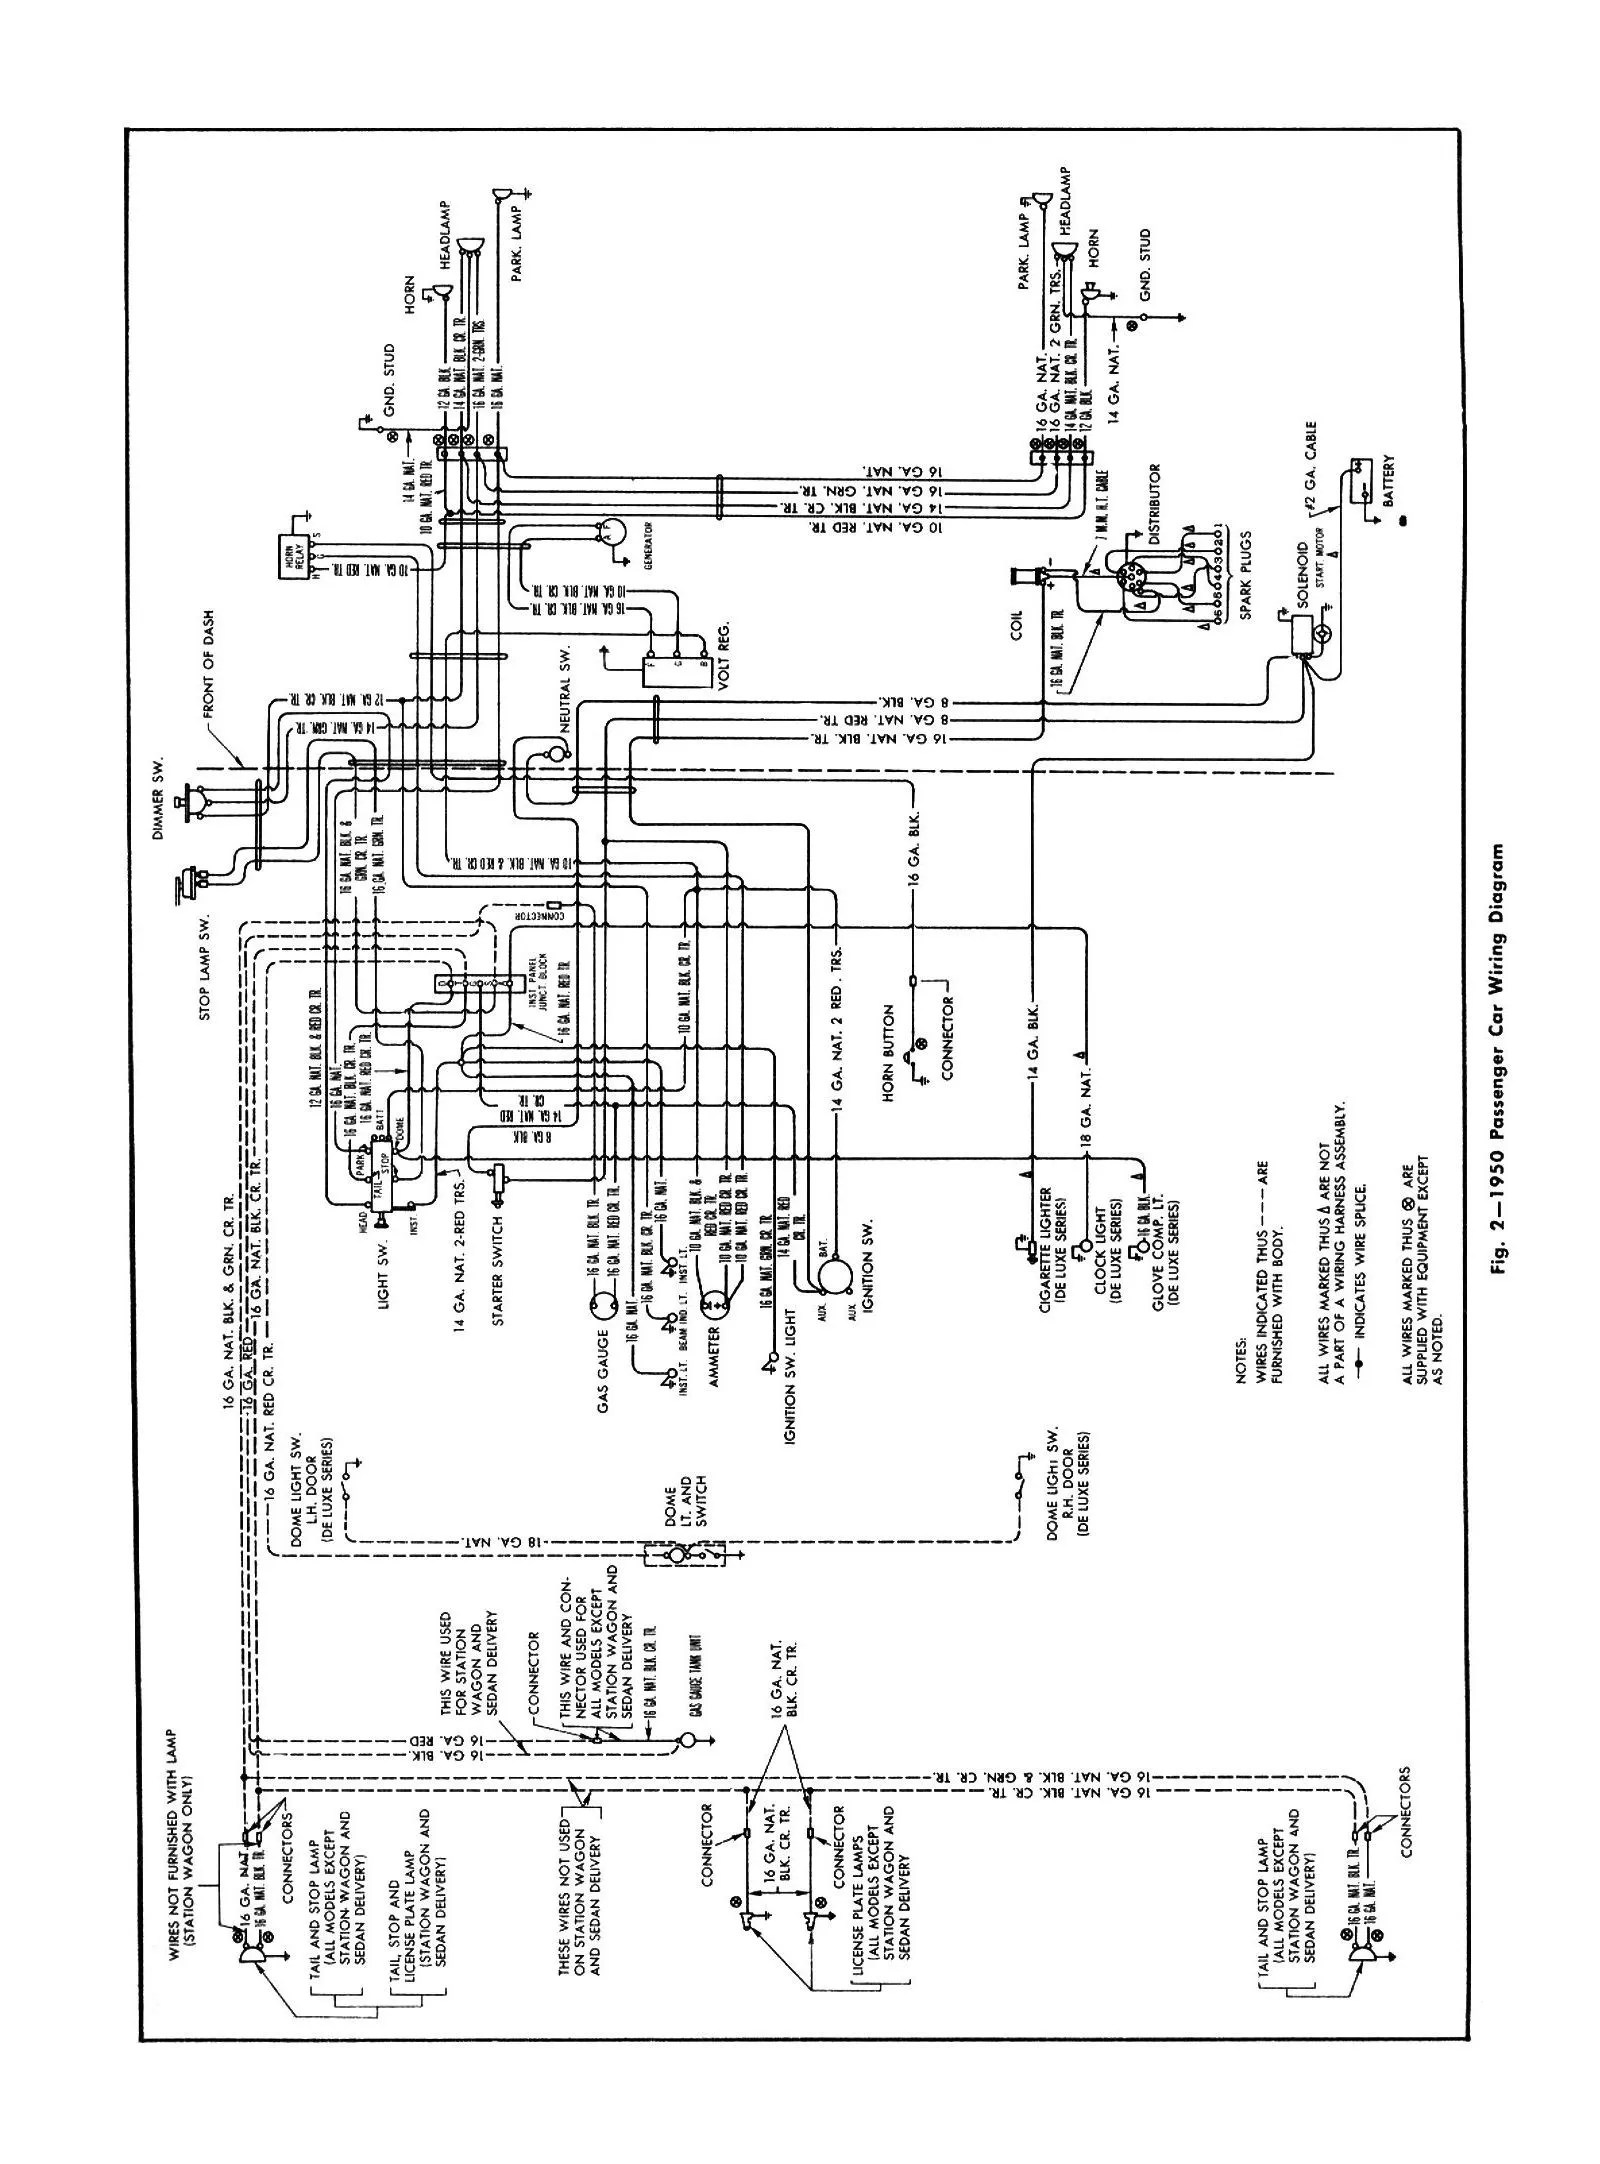 medium resolution of 1952 chevy truck wiring diagram wiring library 1949 ford wiring diagram 1952 chevy pick up wiring diagram